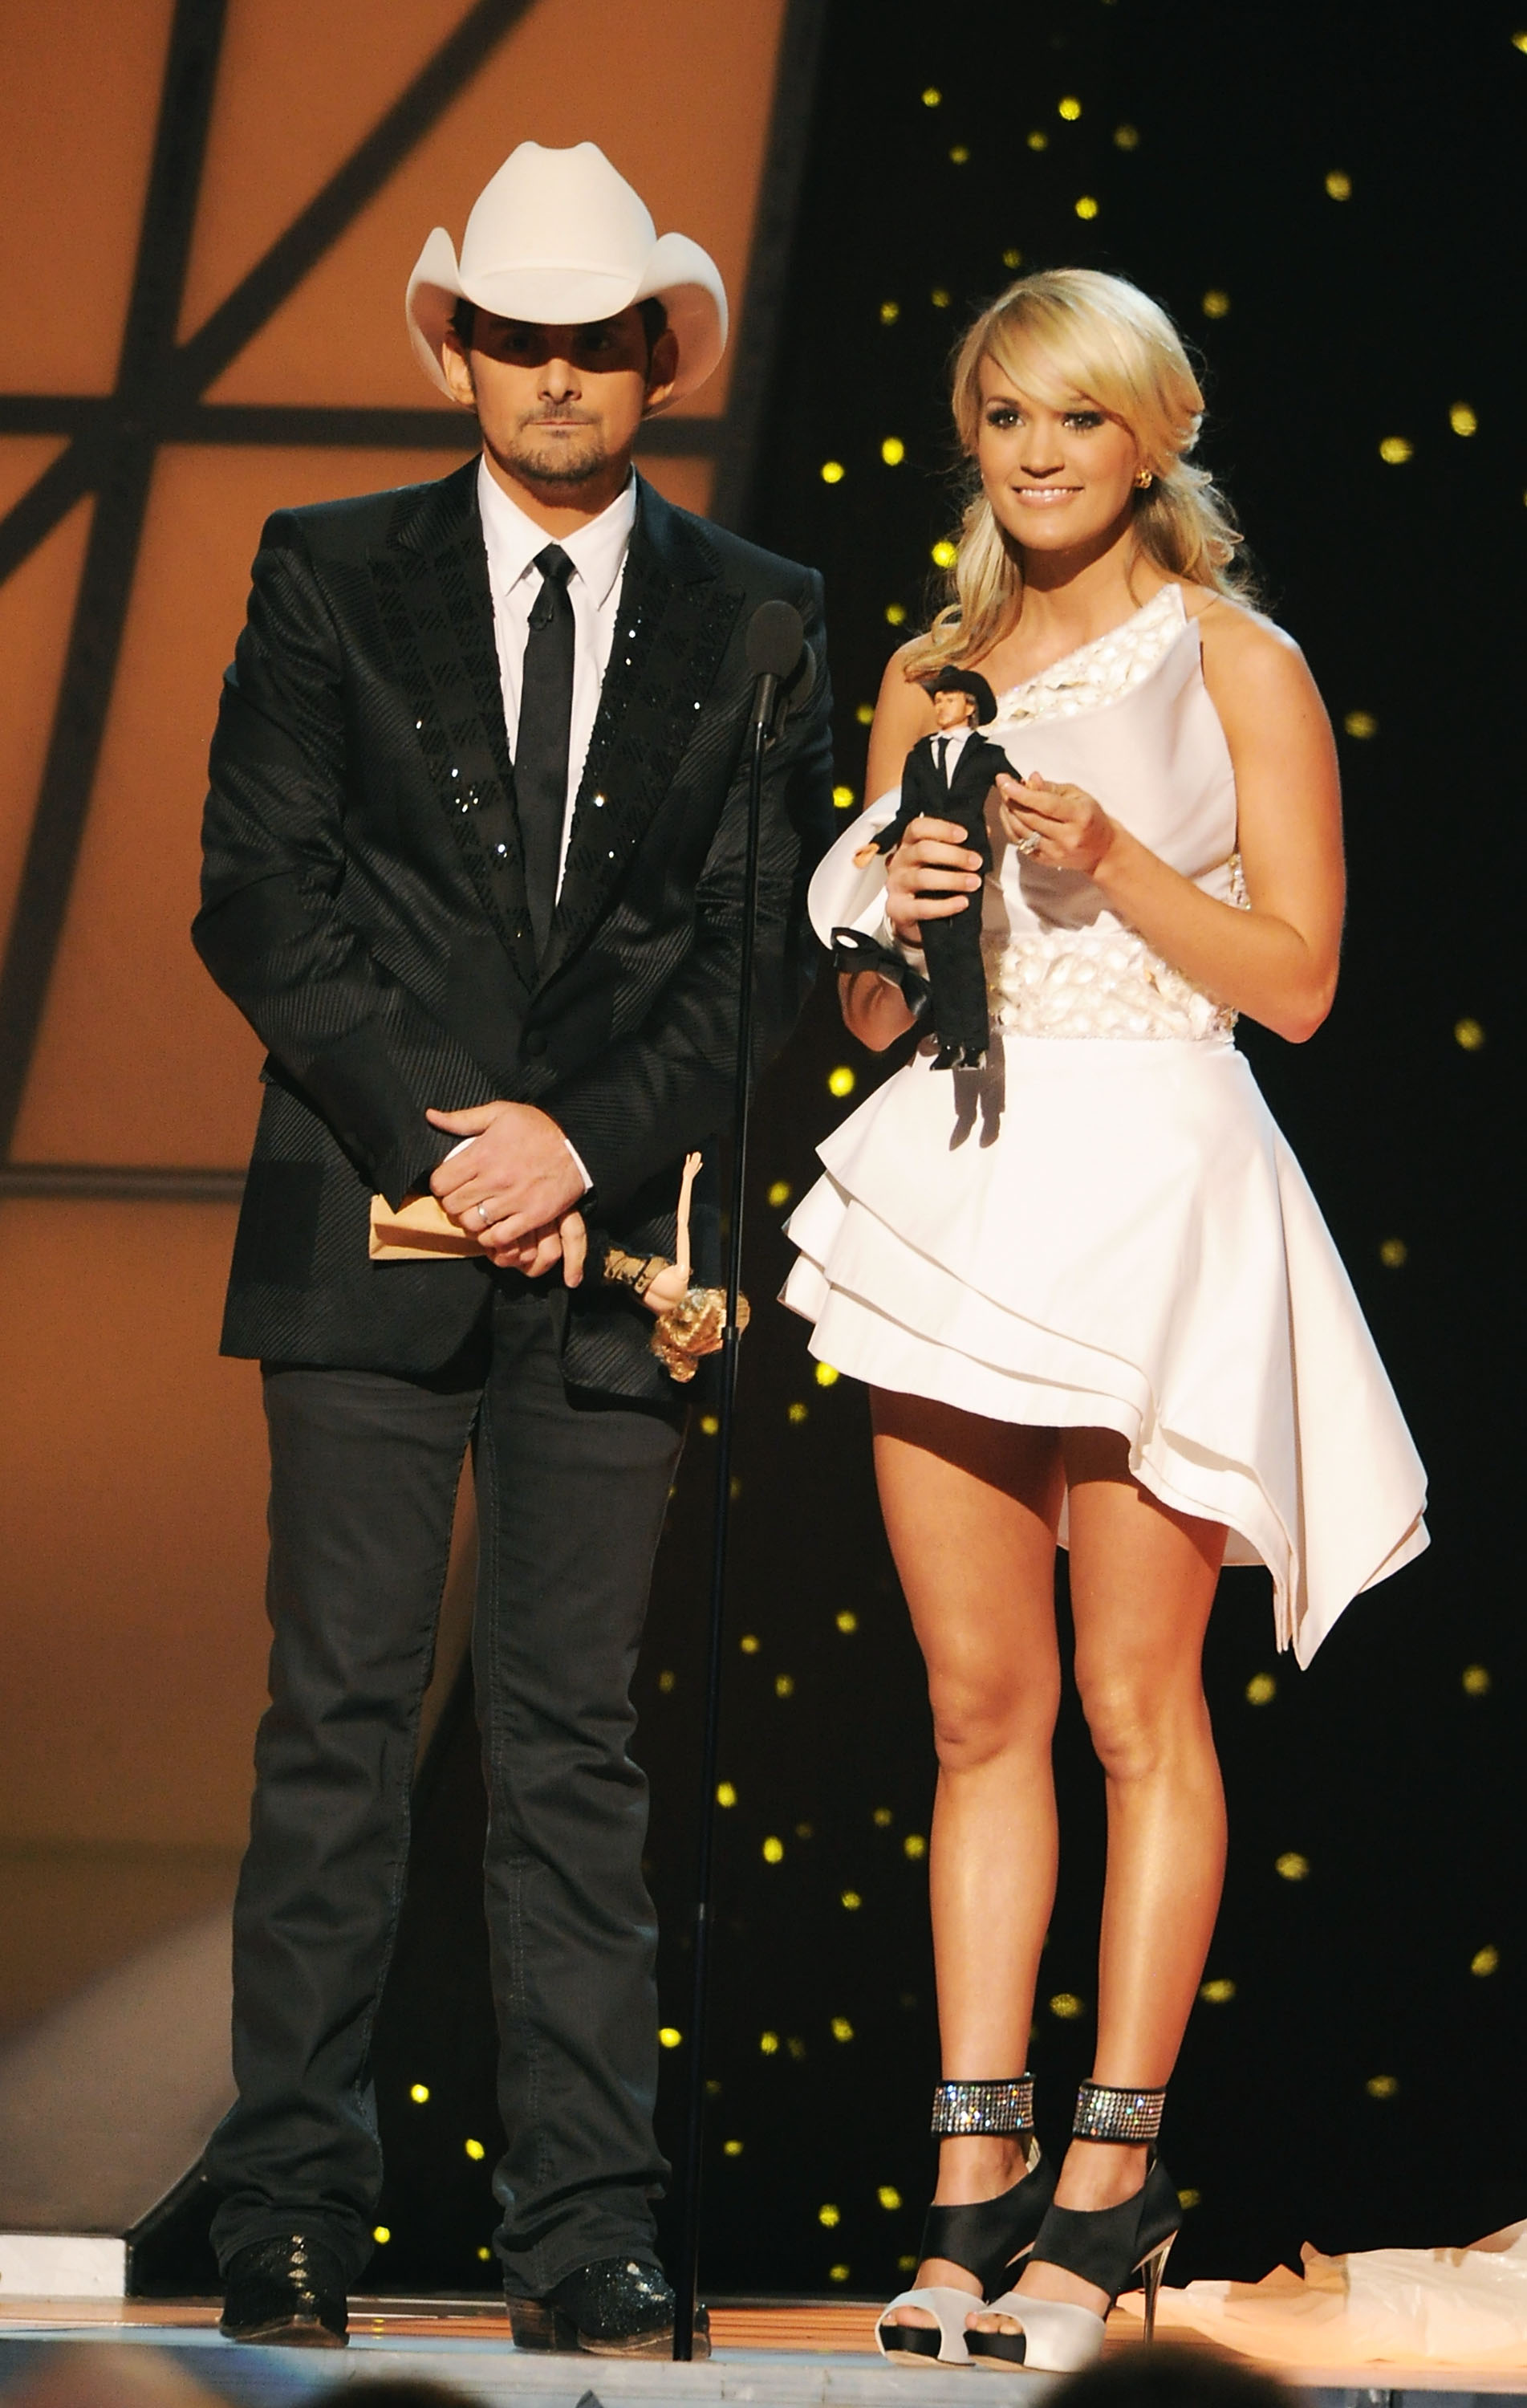 Carrie Underwood and Brad Paisley at the 45th annual CMA Awards on November 9, 2011; Photo by Rick Diamond/Getty Images